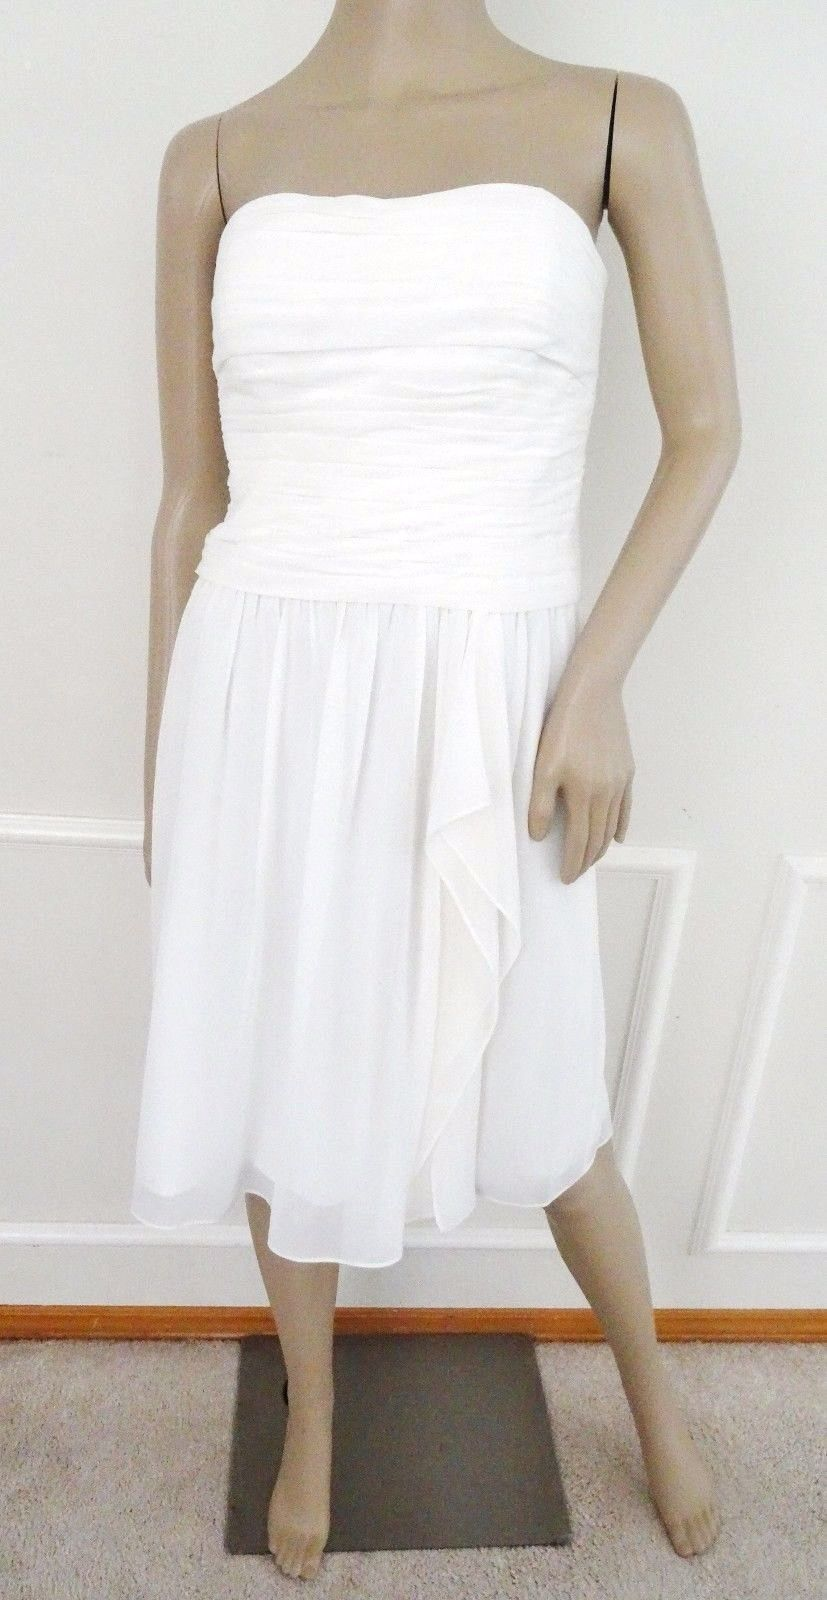 Primary image for Nwt Lauren Ralph Lauren Strapless Cocktail Semi Formal Prom Dress Sz 4 White